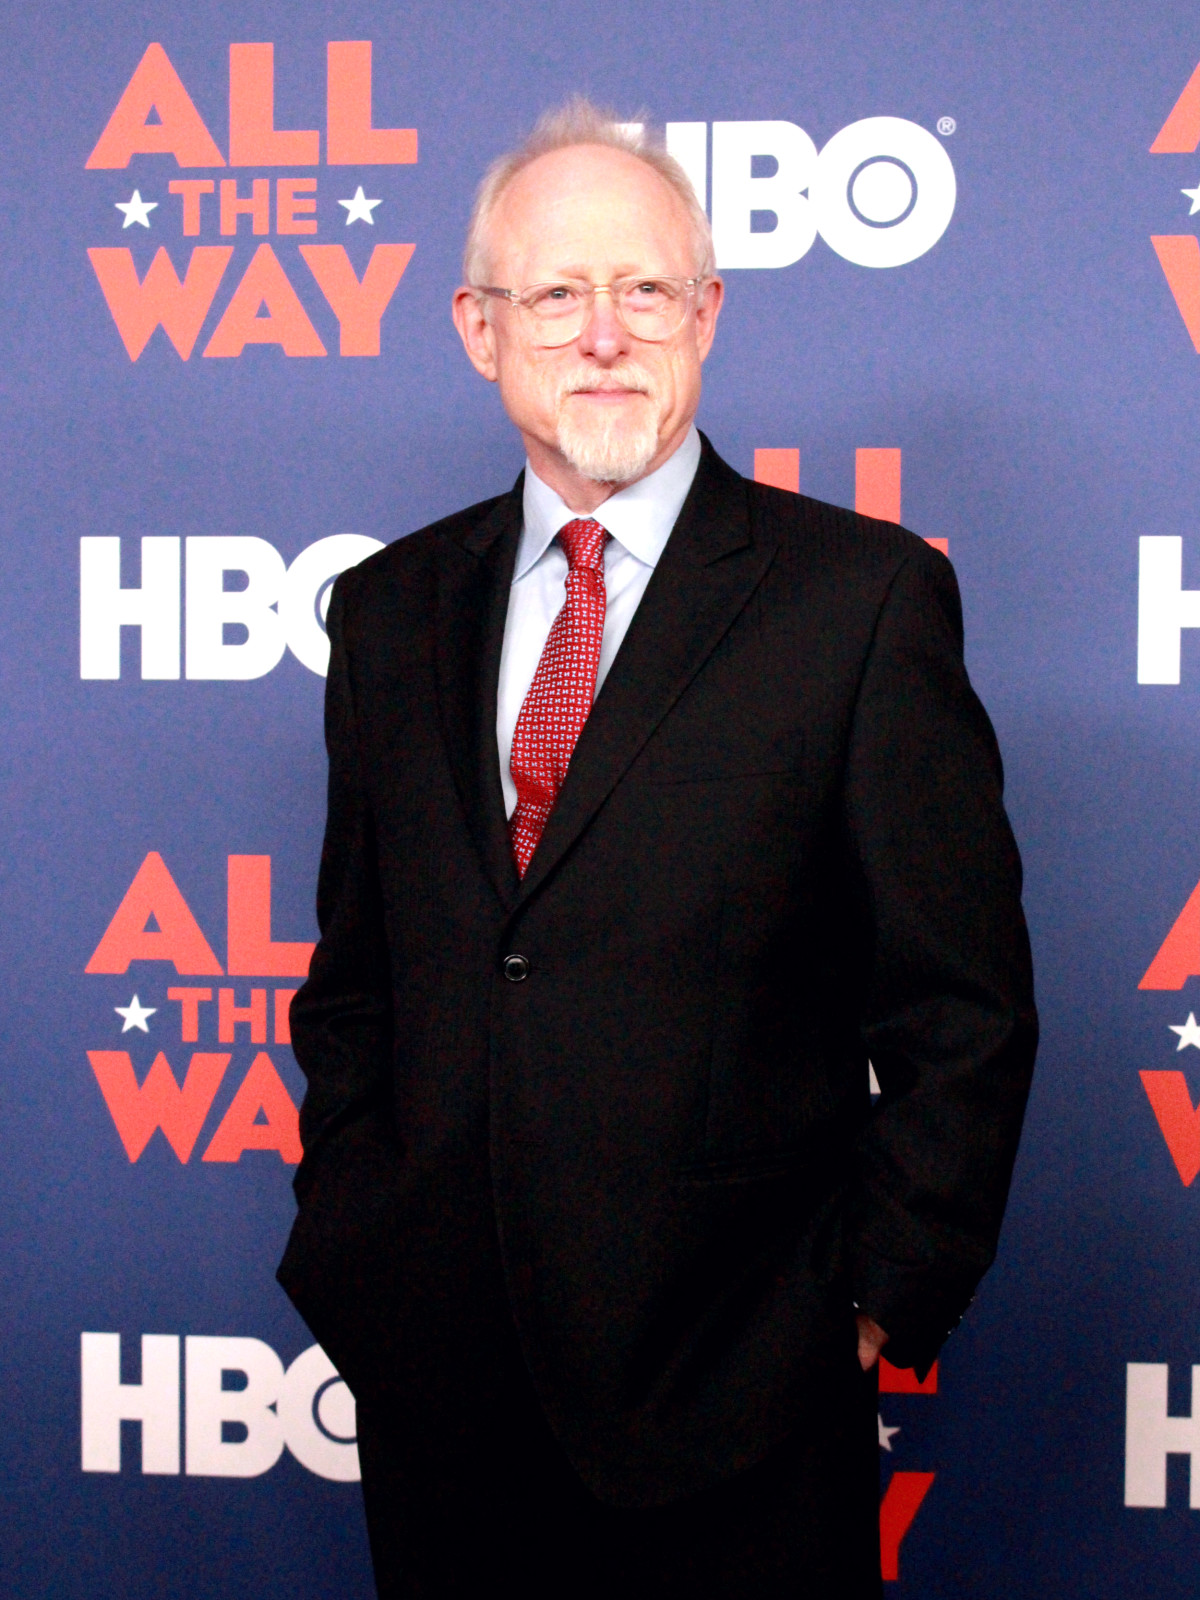 Austin premiere HBO film All the Way LBJ red carpet Robert Schenkkan